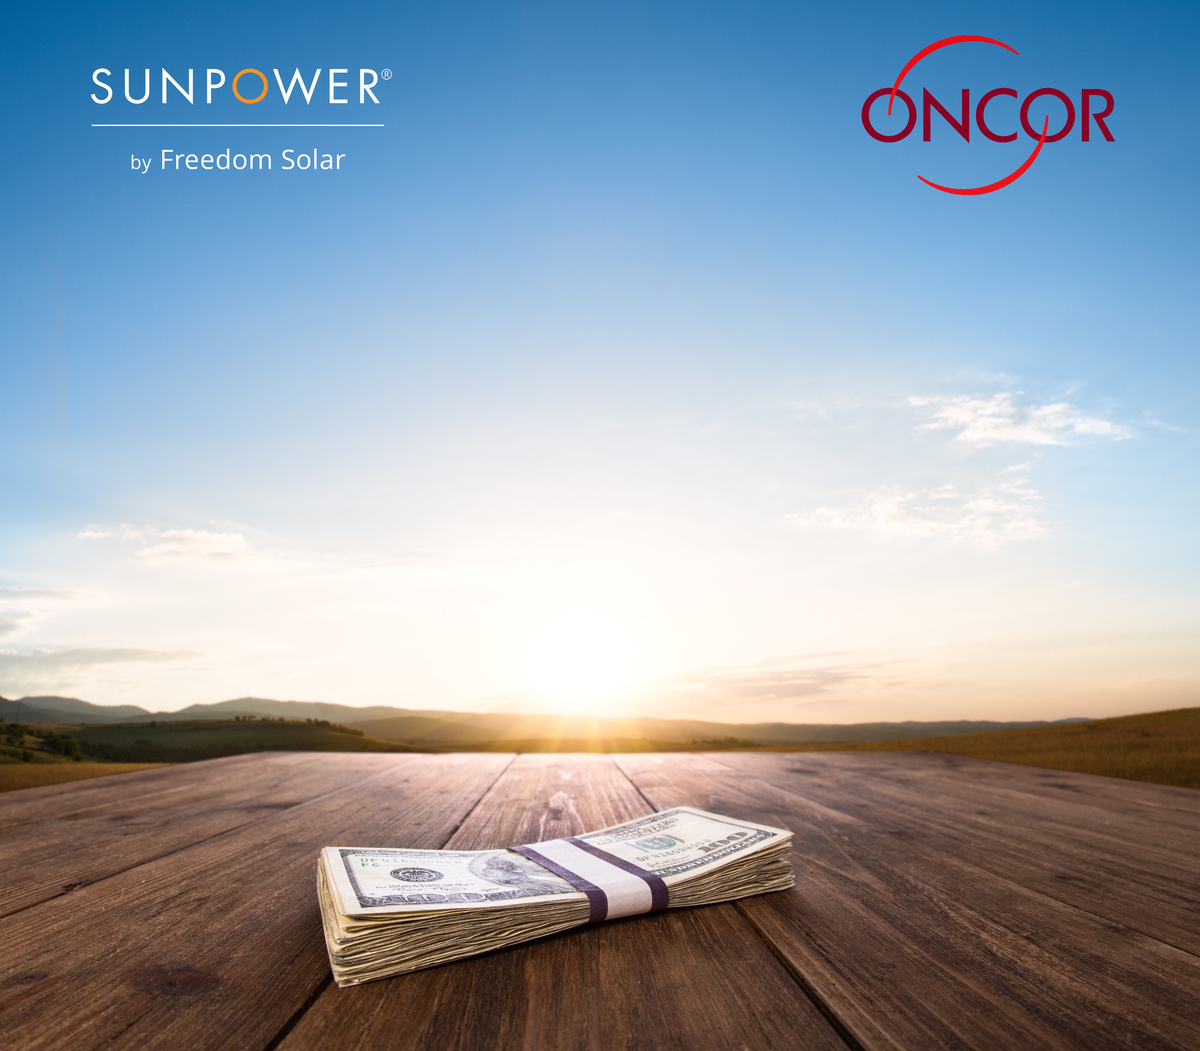 sunpower-oncor-2017-rebate-program-money.jpg